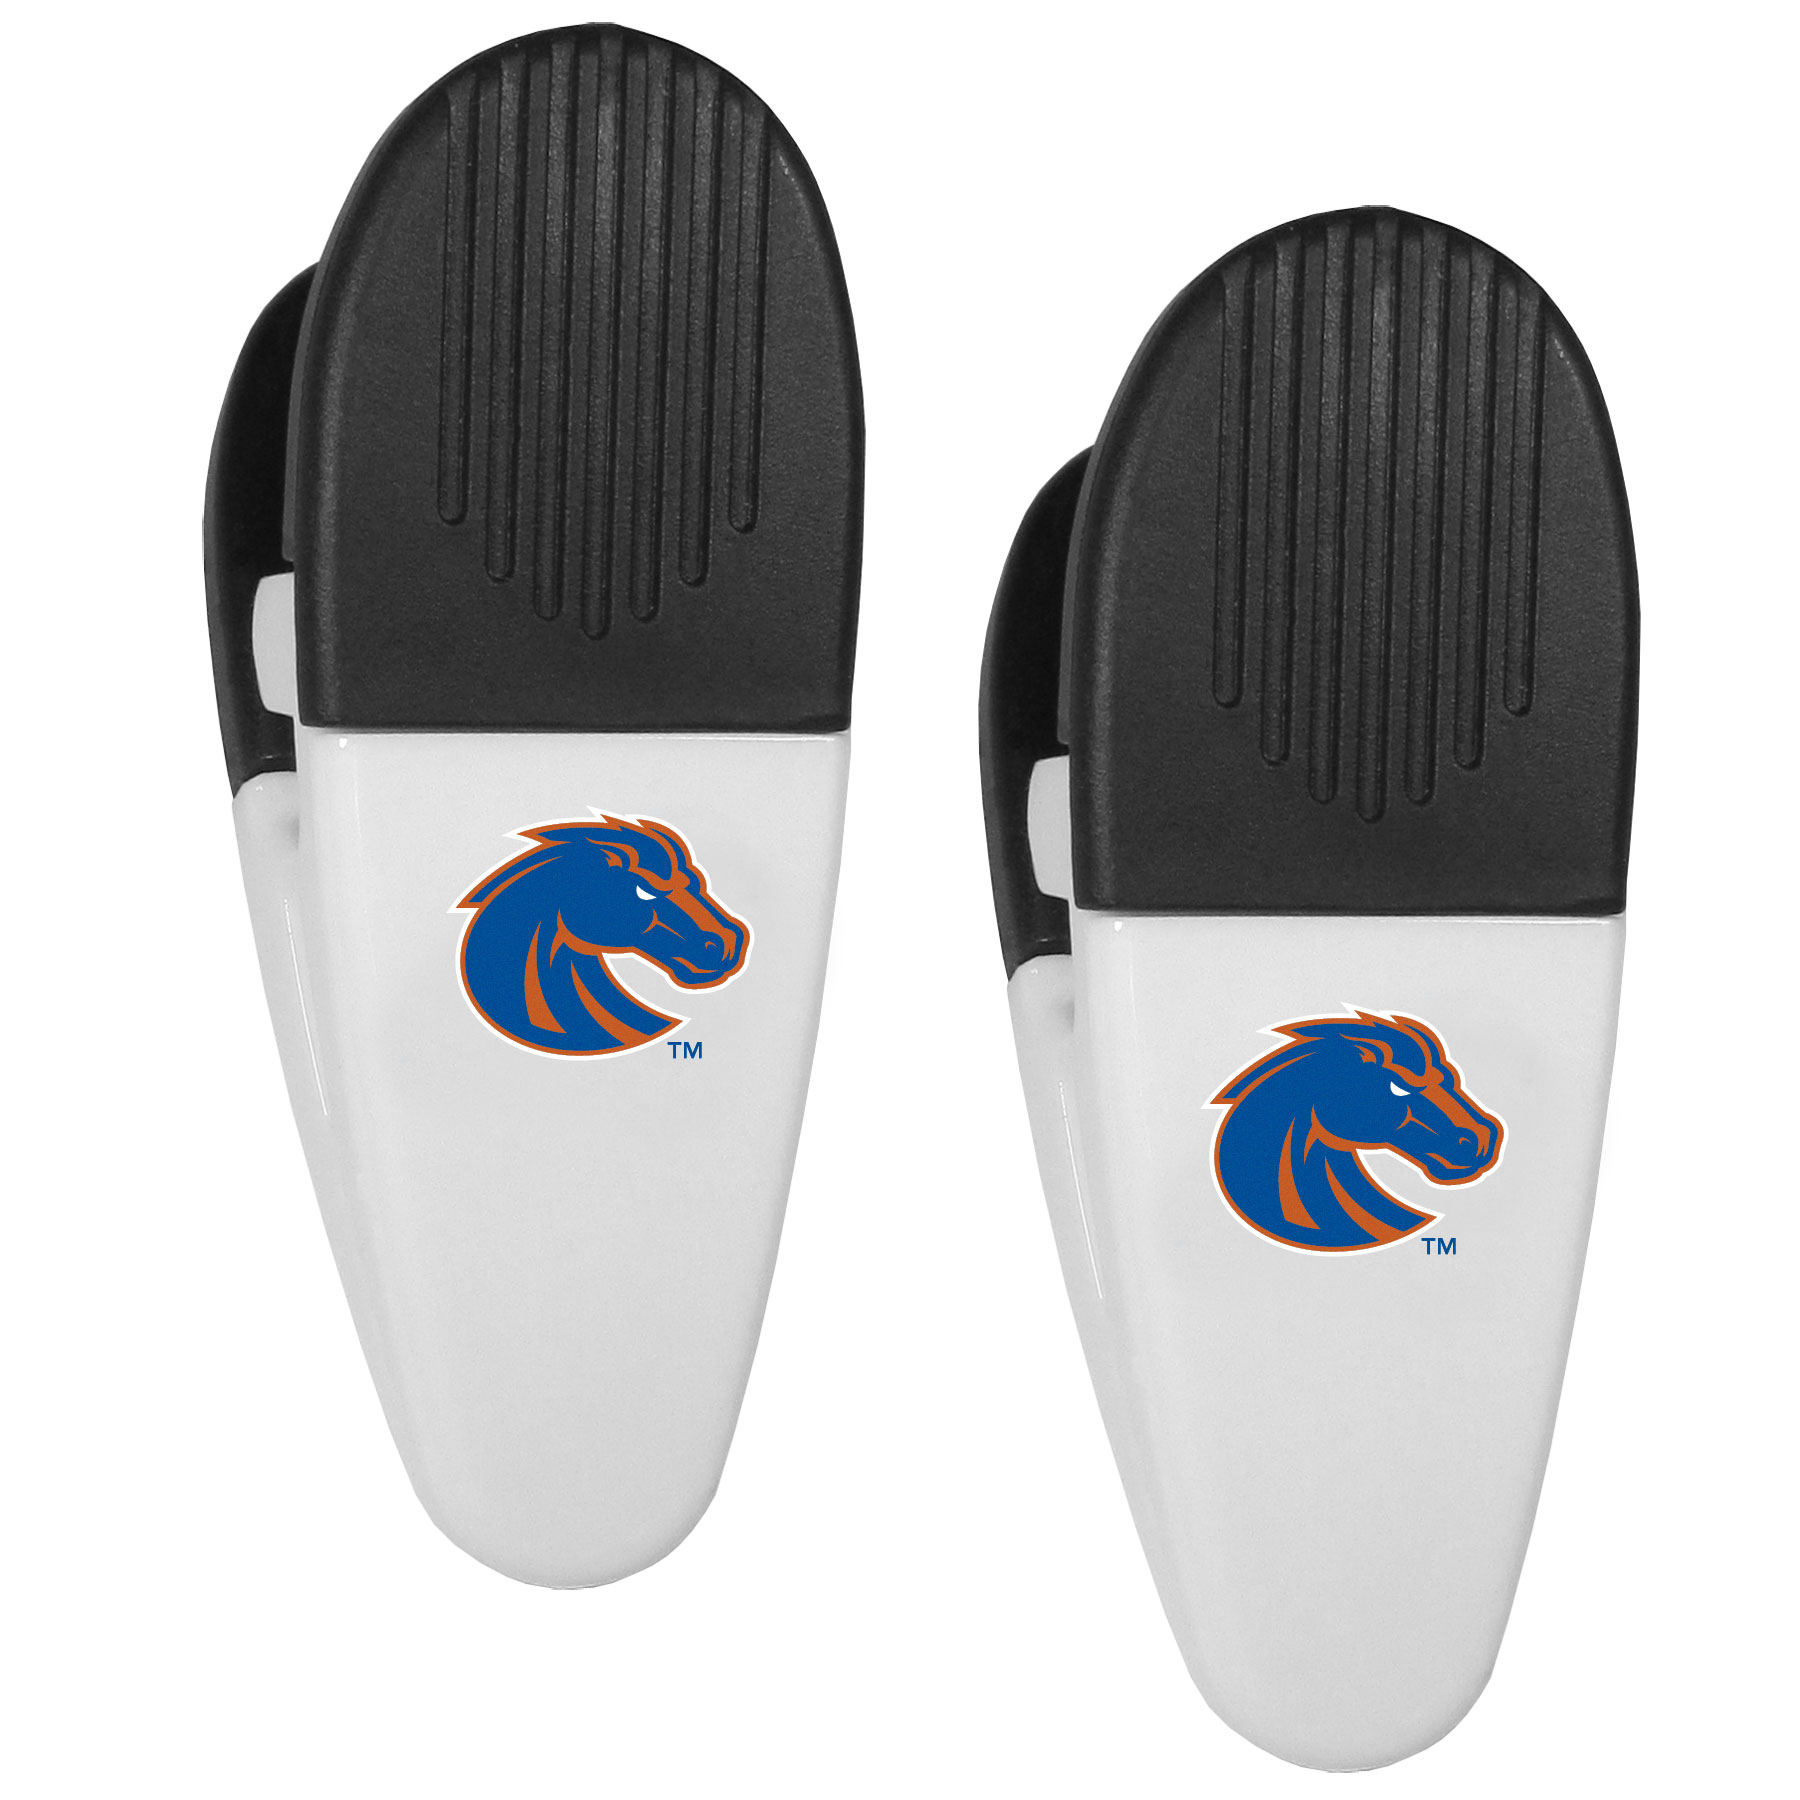 Boise St. Broncos Mini Chip Clip Magnets, 2 pk - Our Boise St. Broncos chip clip magnets feature a crisp team logo on the front of the clip. The clip is perfect for sealing chips for freshness and with the powerful magnet on the back it can be used to attach notes to the fridge or hanging your child's artwork. Set of 2 magnet clips, each clip is 3.5 inches tall and 1.25 inch wide.